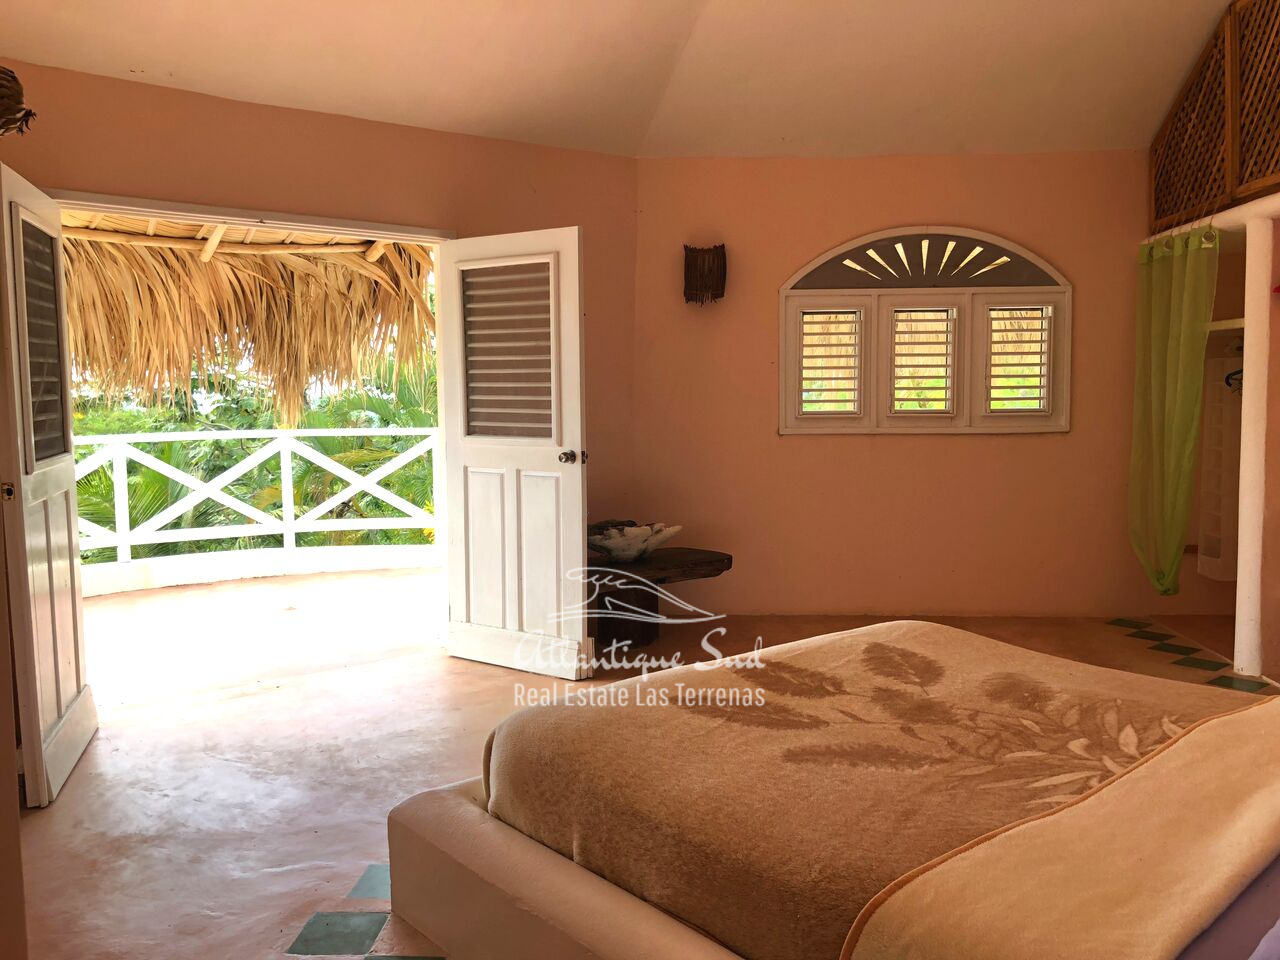 caribbean-style-villa-on-hill-for-sale22.png